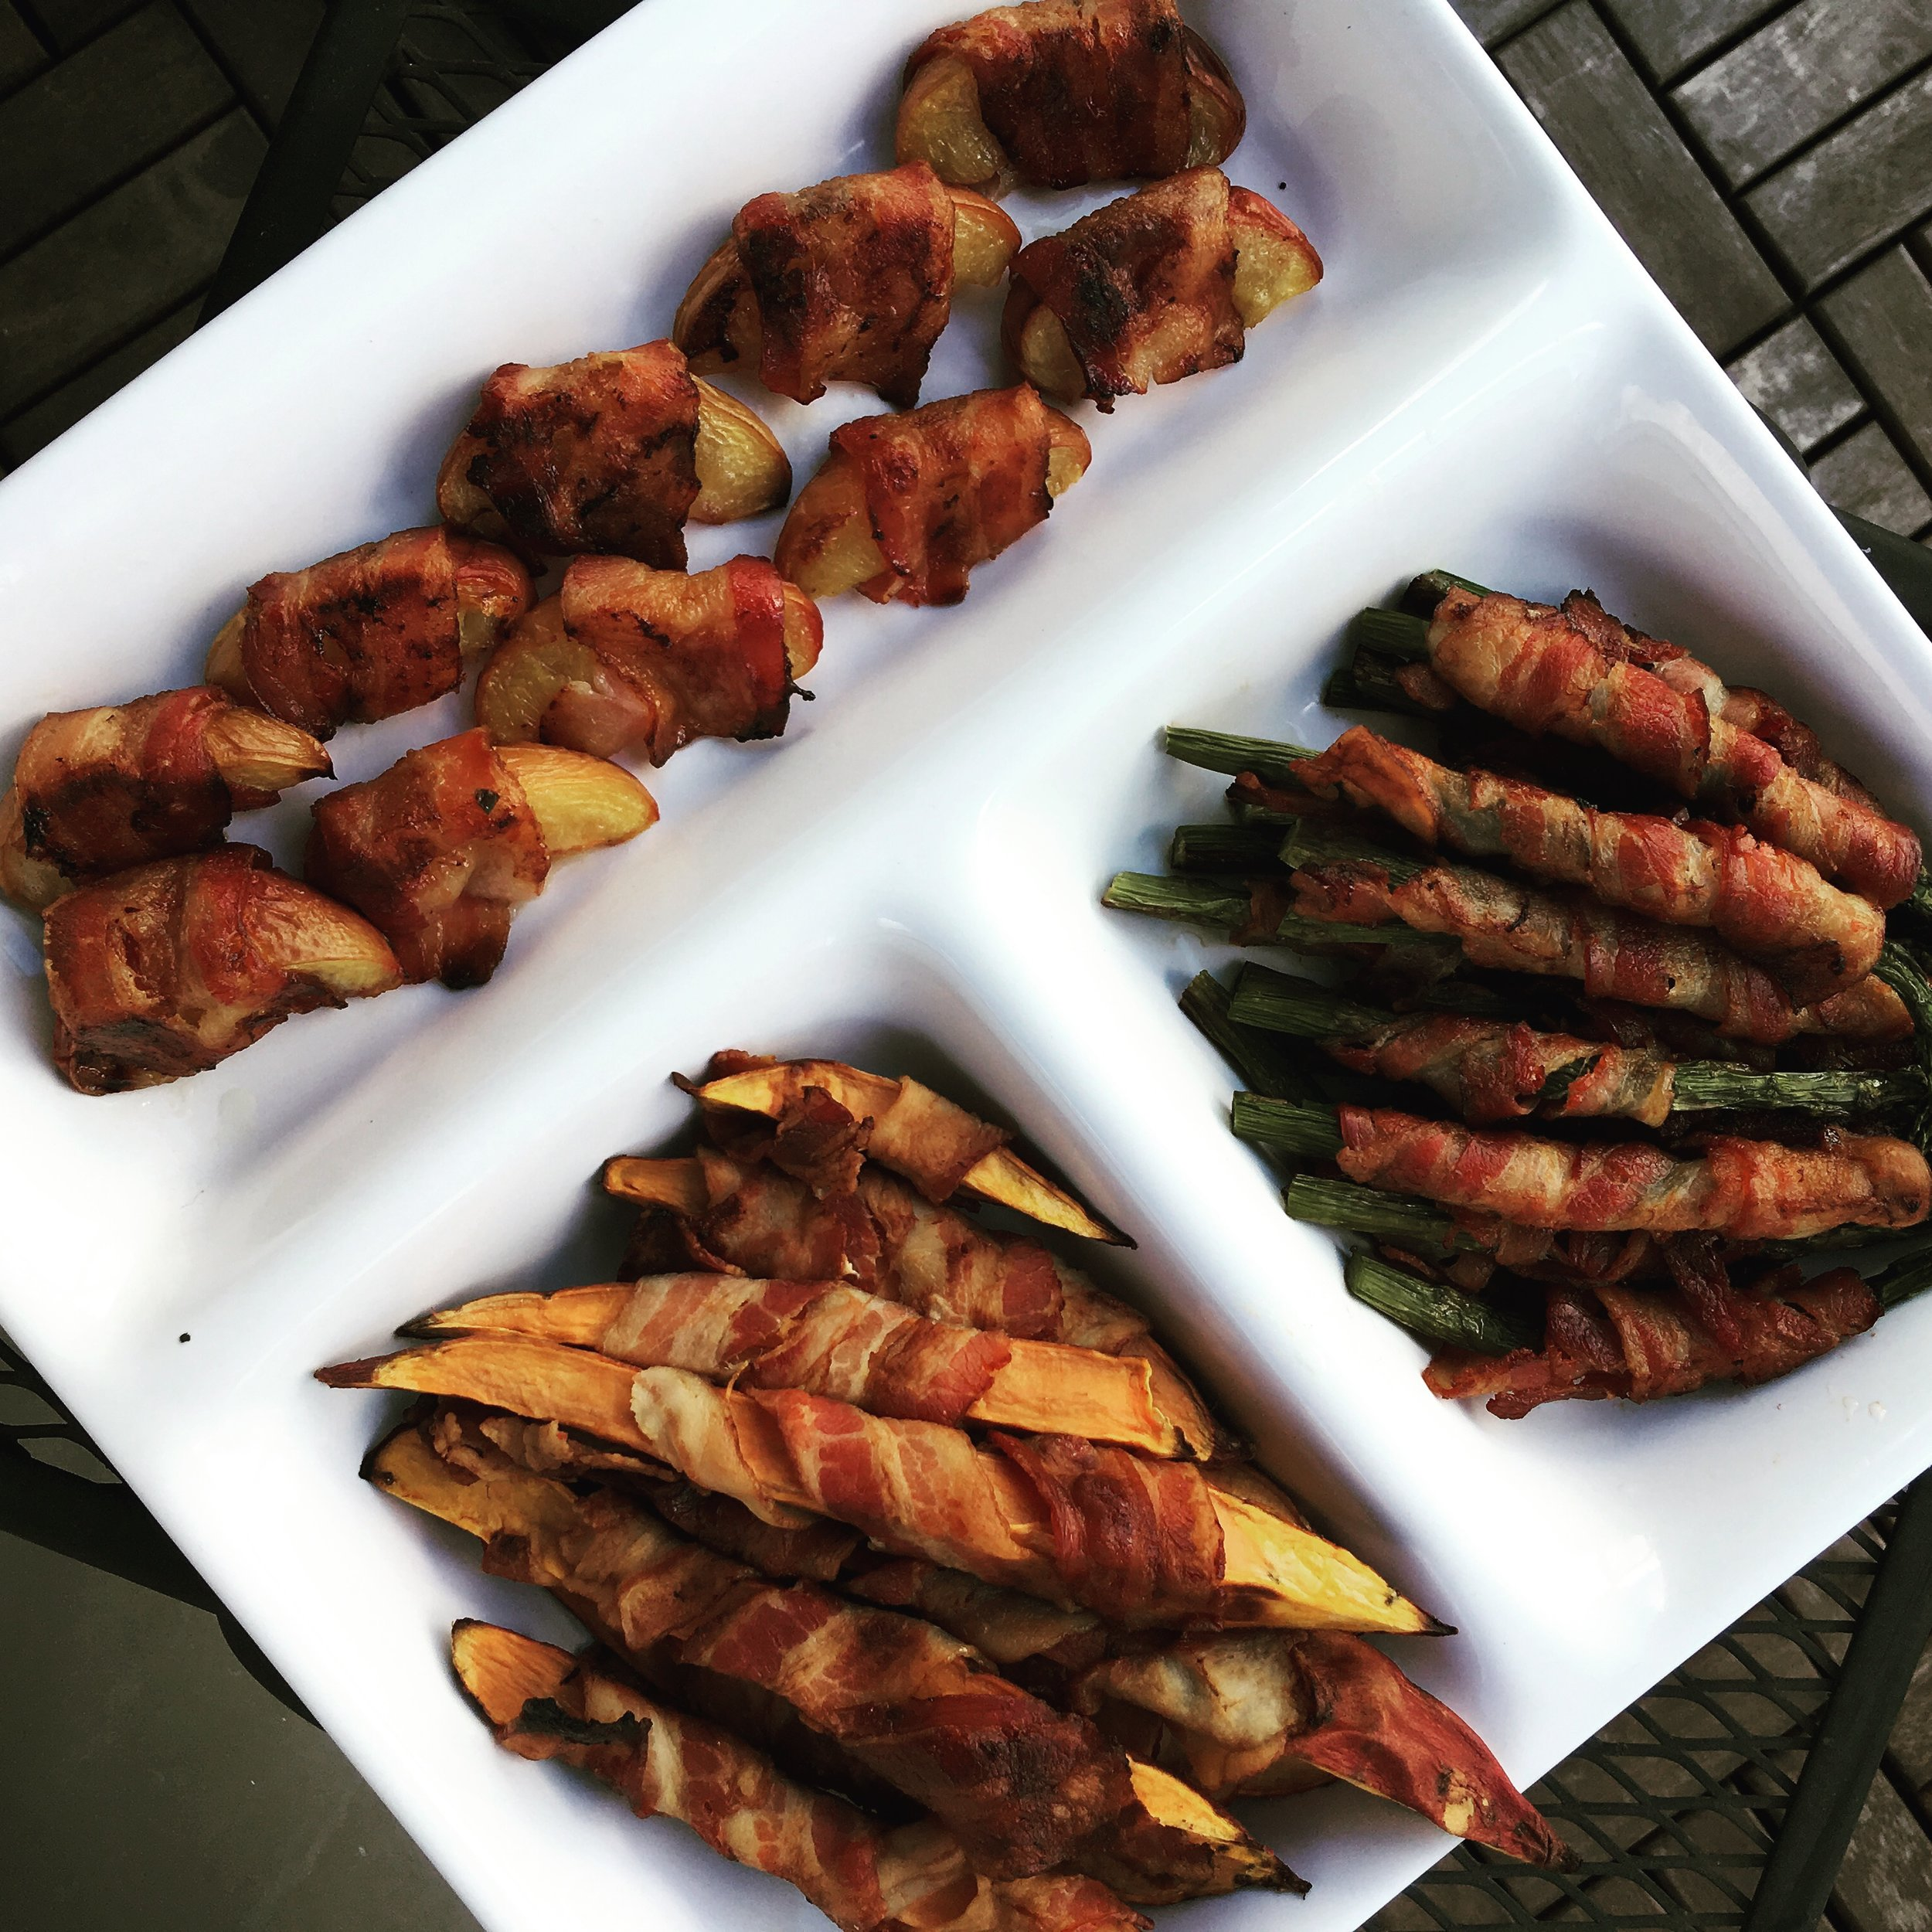 Day 4 Bacon Wrapped Bites -